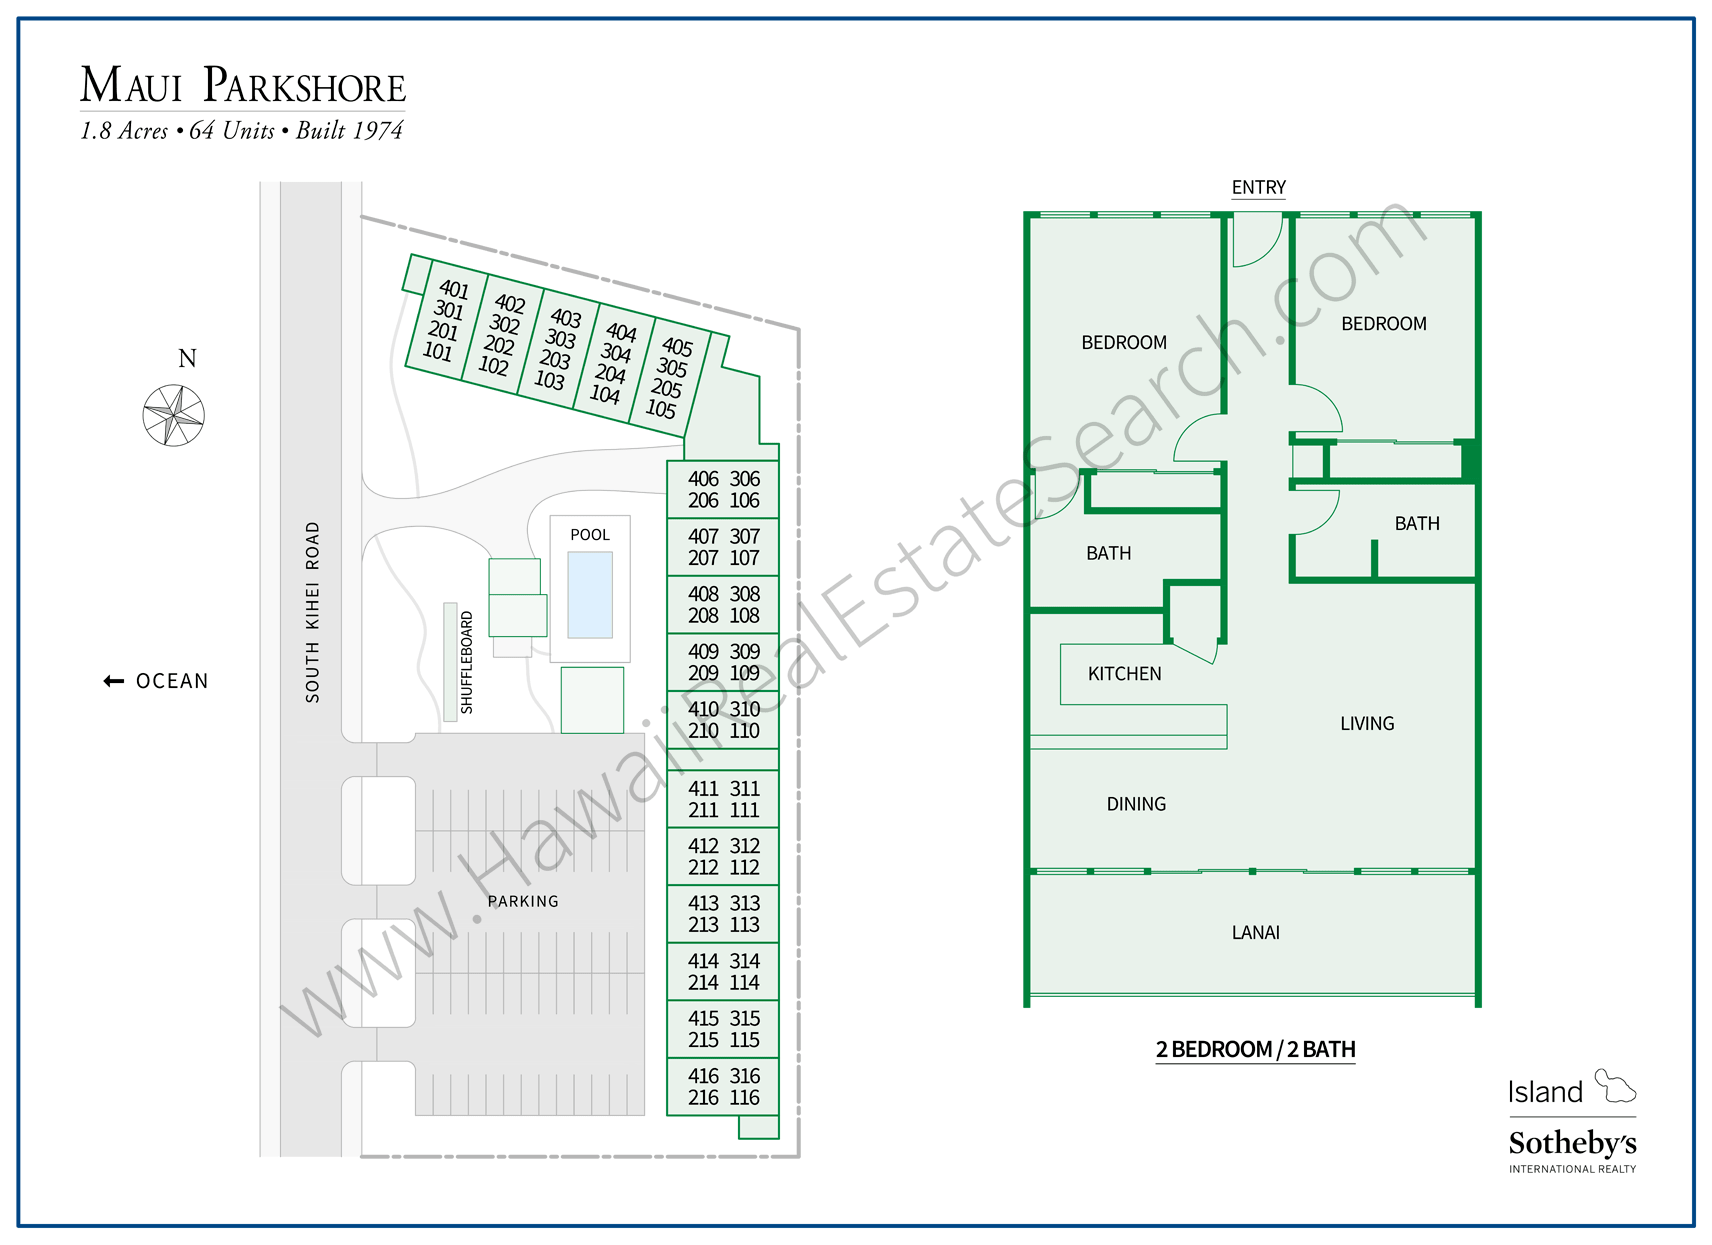 Maui Parkshore Property Map and Floor Plan